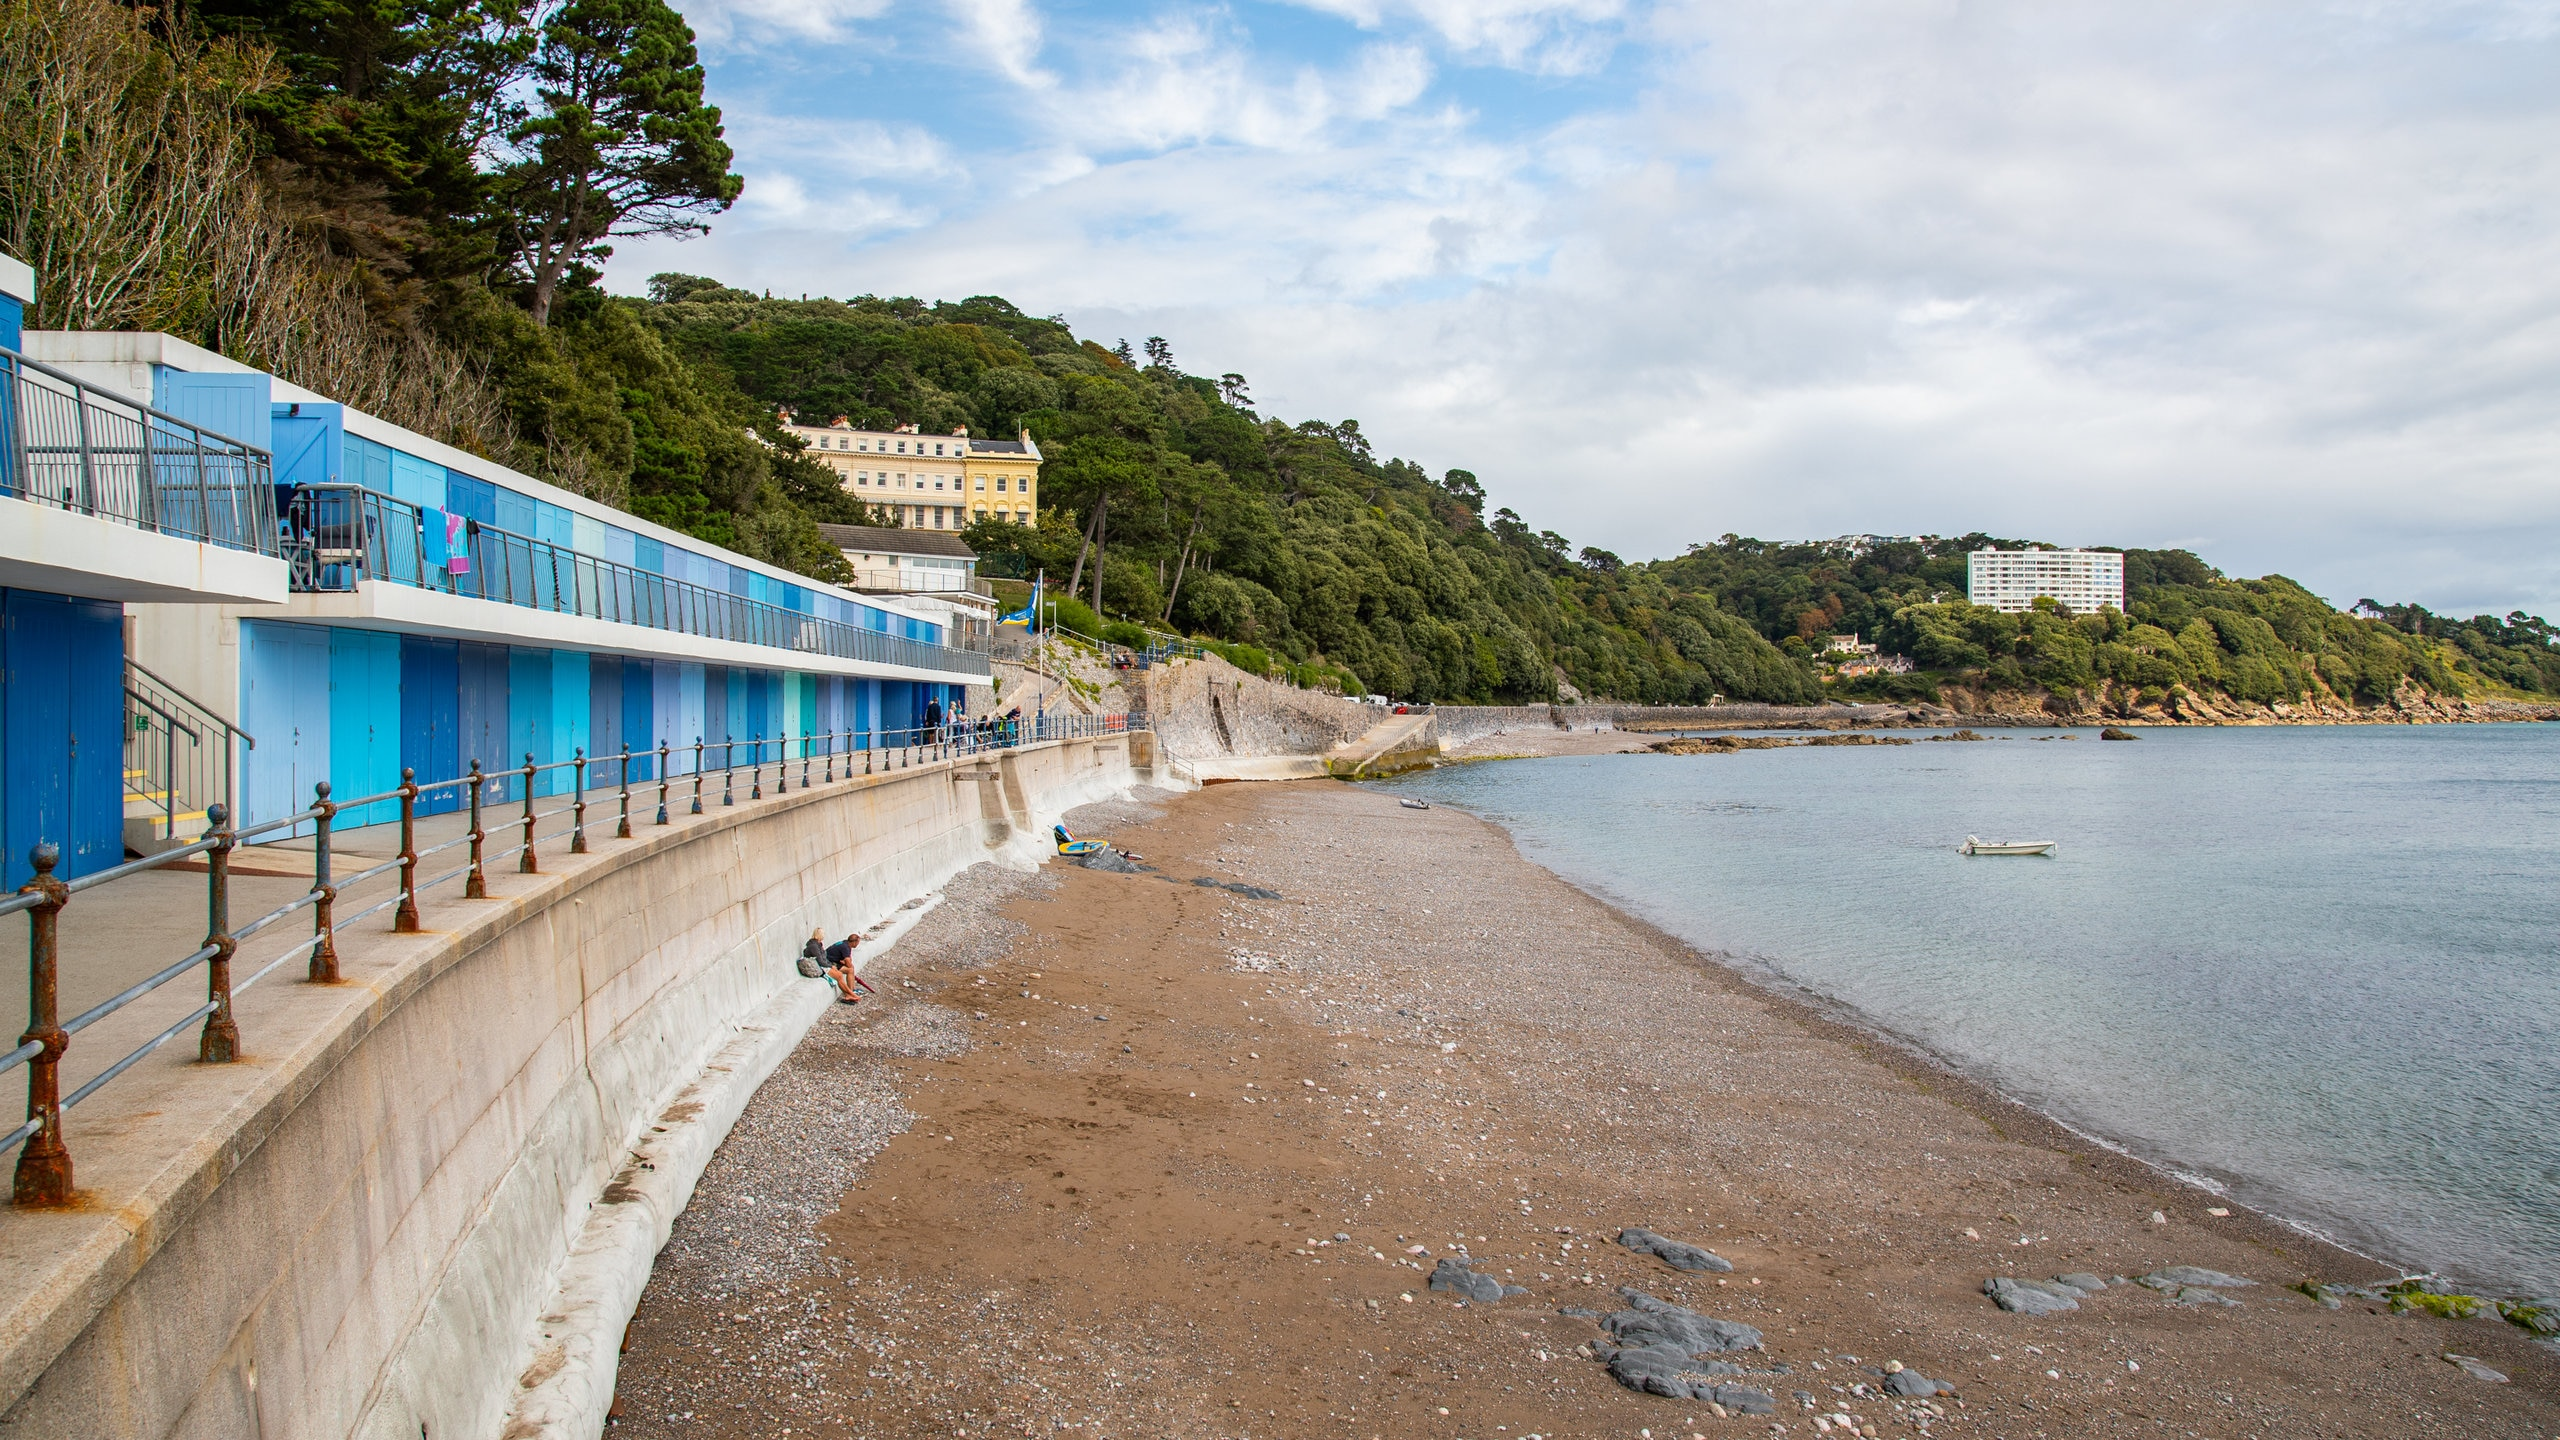 Walk along a scenic coastal path from Torquay Harbour to reach this well-maintained beach, a favorite with water sports fans.